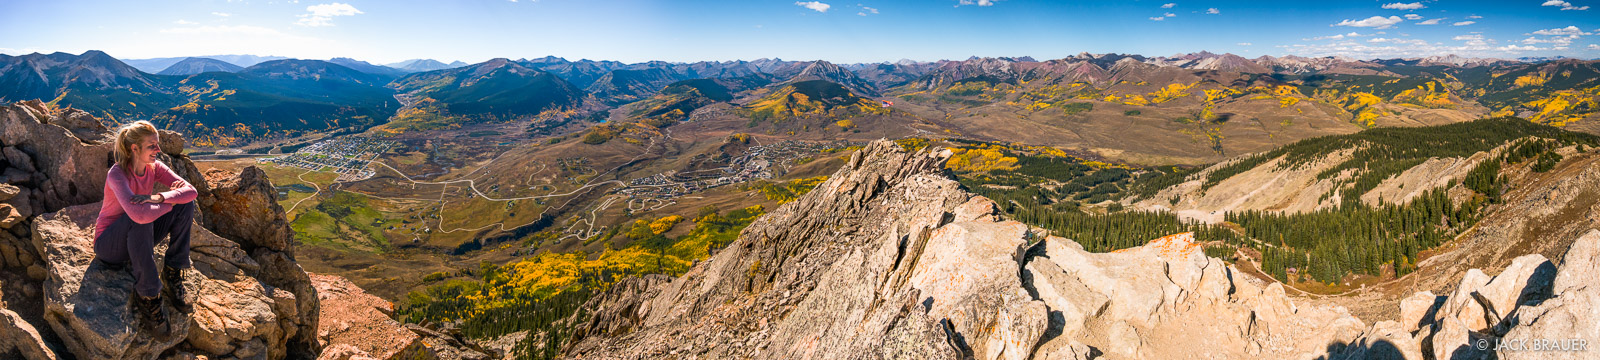 Mt Crested Butte Summit Pano